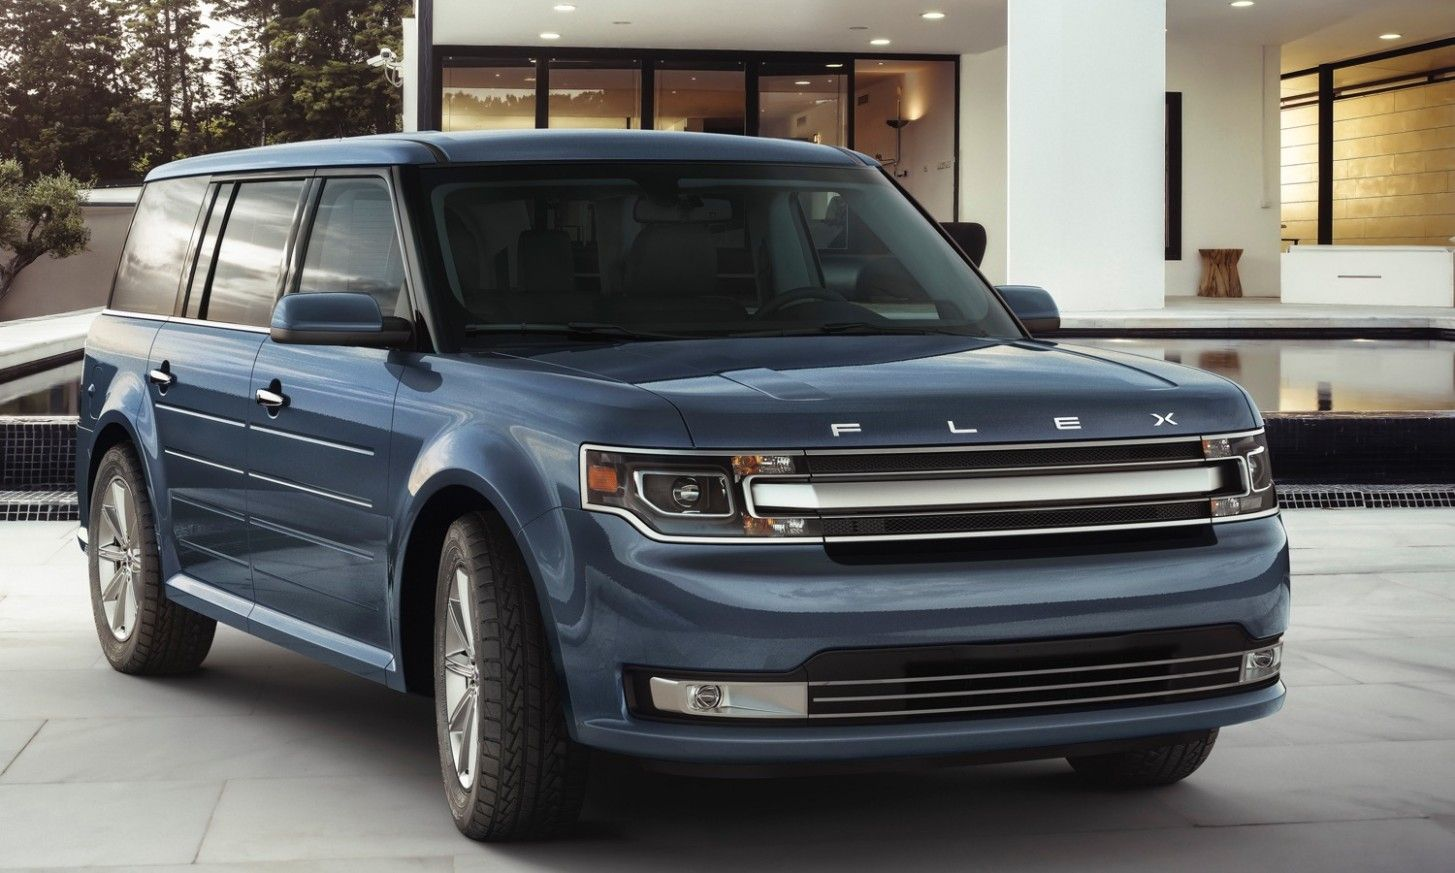 2021 ford flex s with images ford flex exterior on house colors for 2021 id=83687